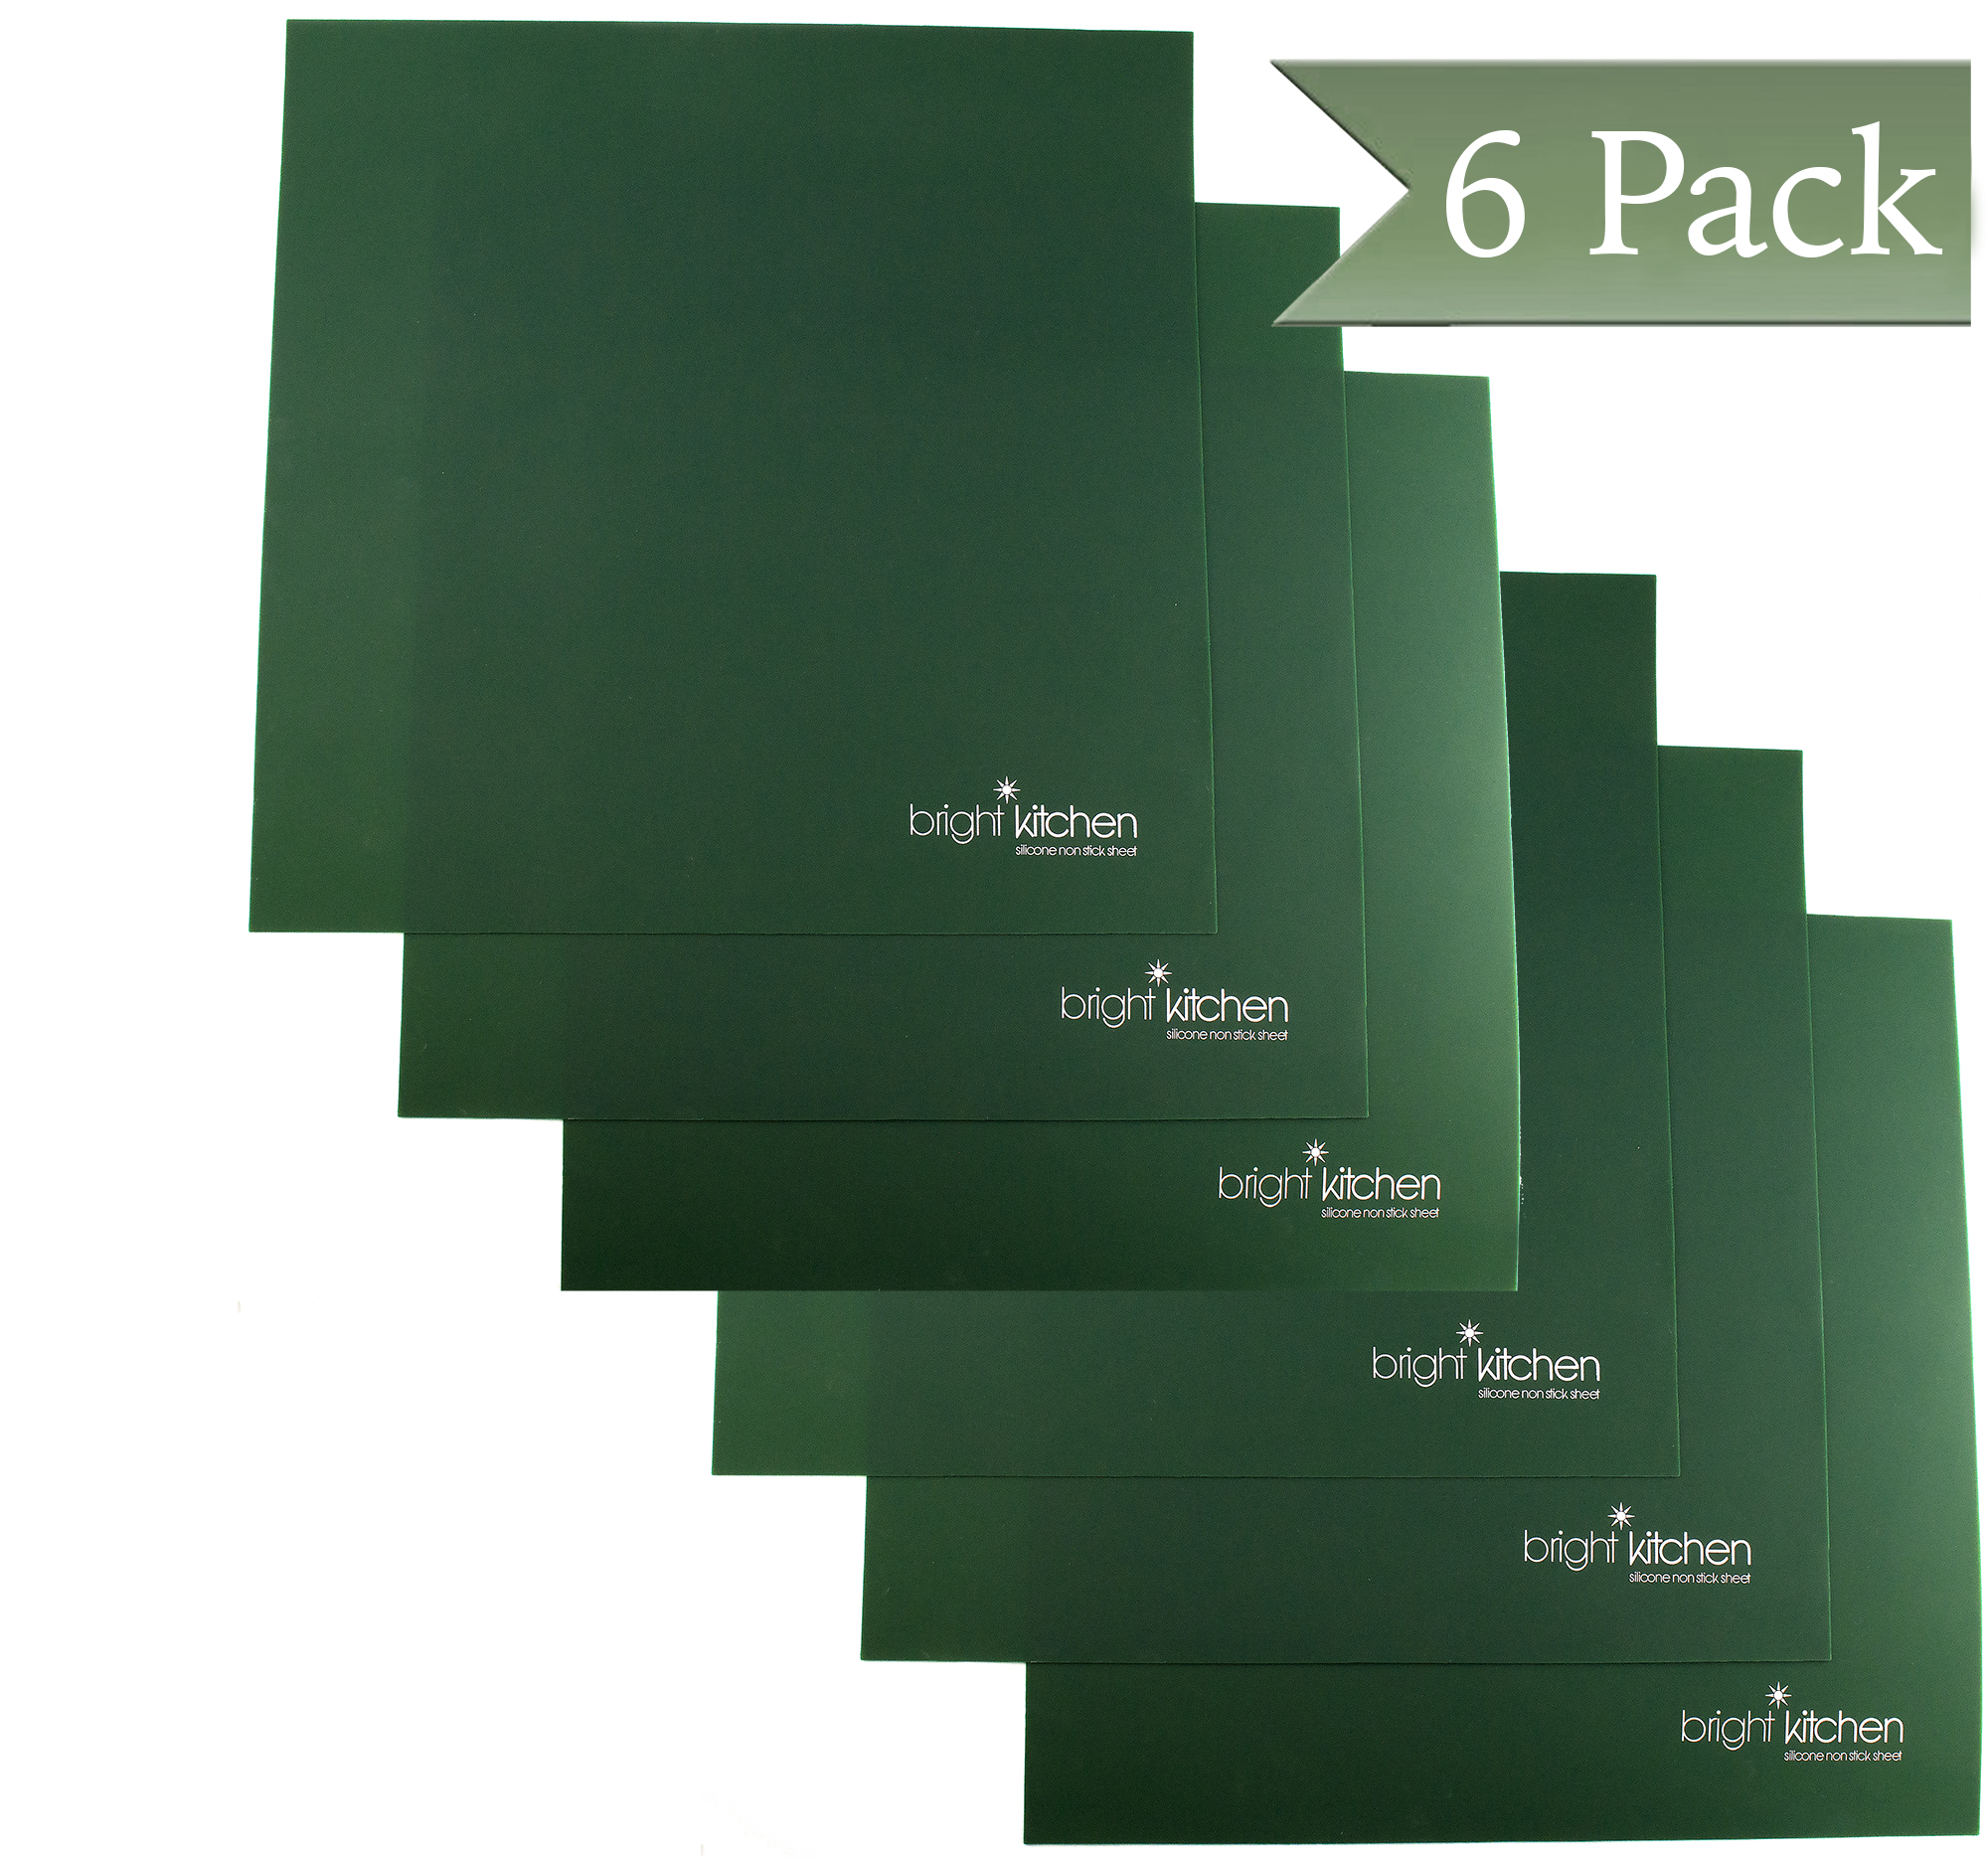 """Set of 6 - 14"""" x 14"""" Silicone Sheets for Excalibur Dehydrator Bright Kitchen Re-Usable Non-Stick Ma"""